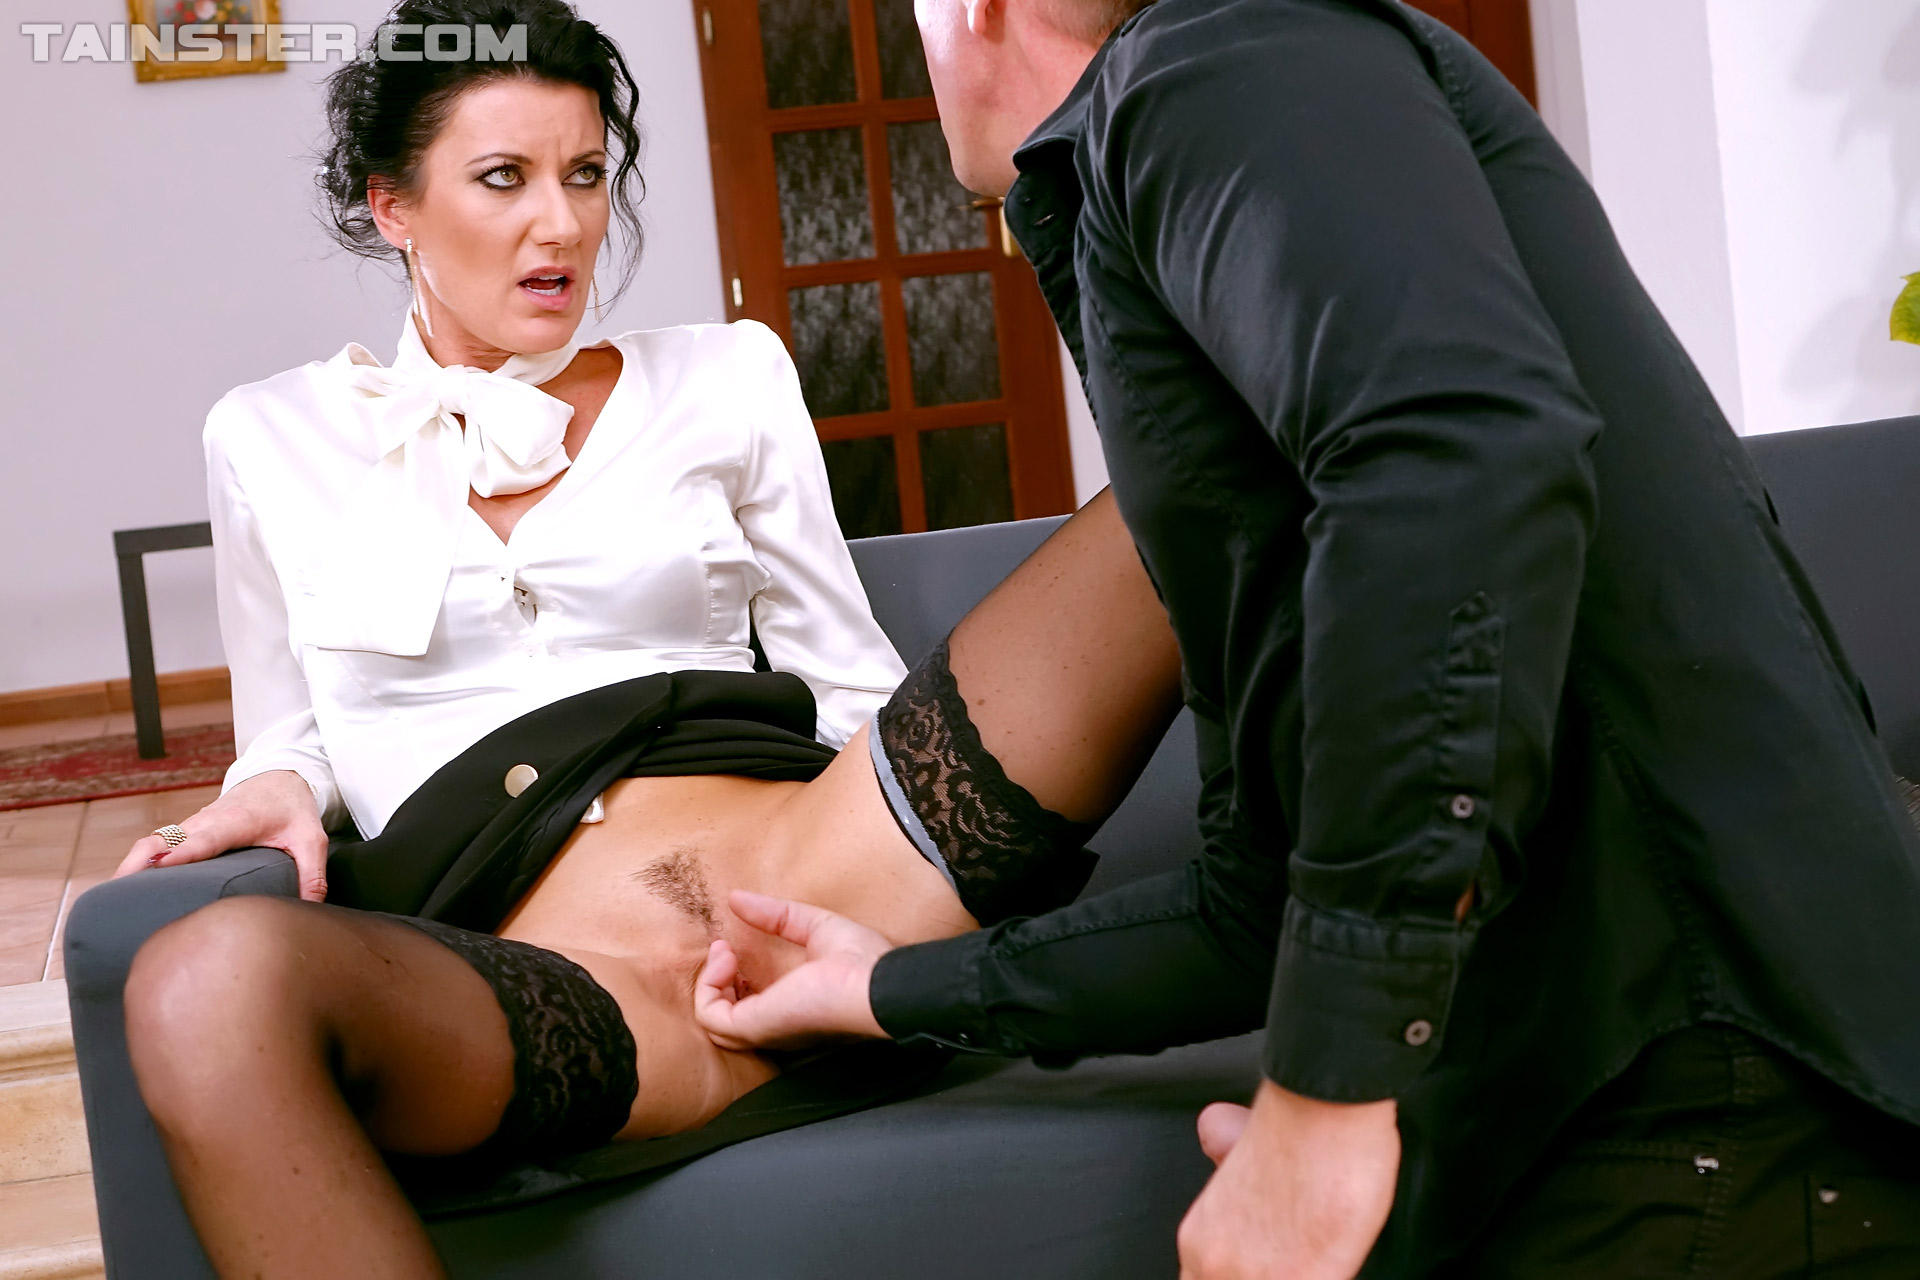 elegant brunette opens stockinged legs for her man as they launch